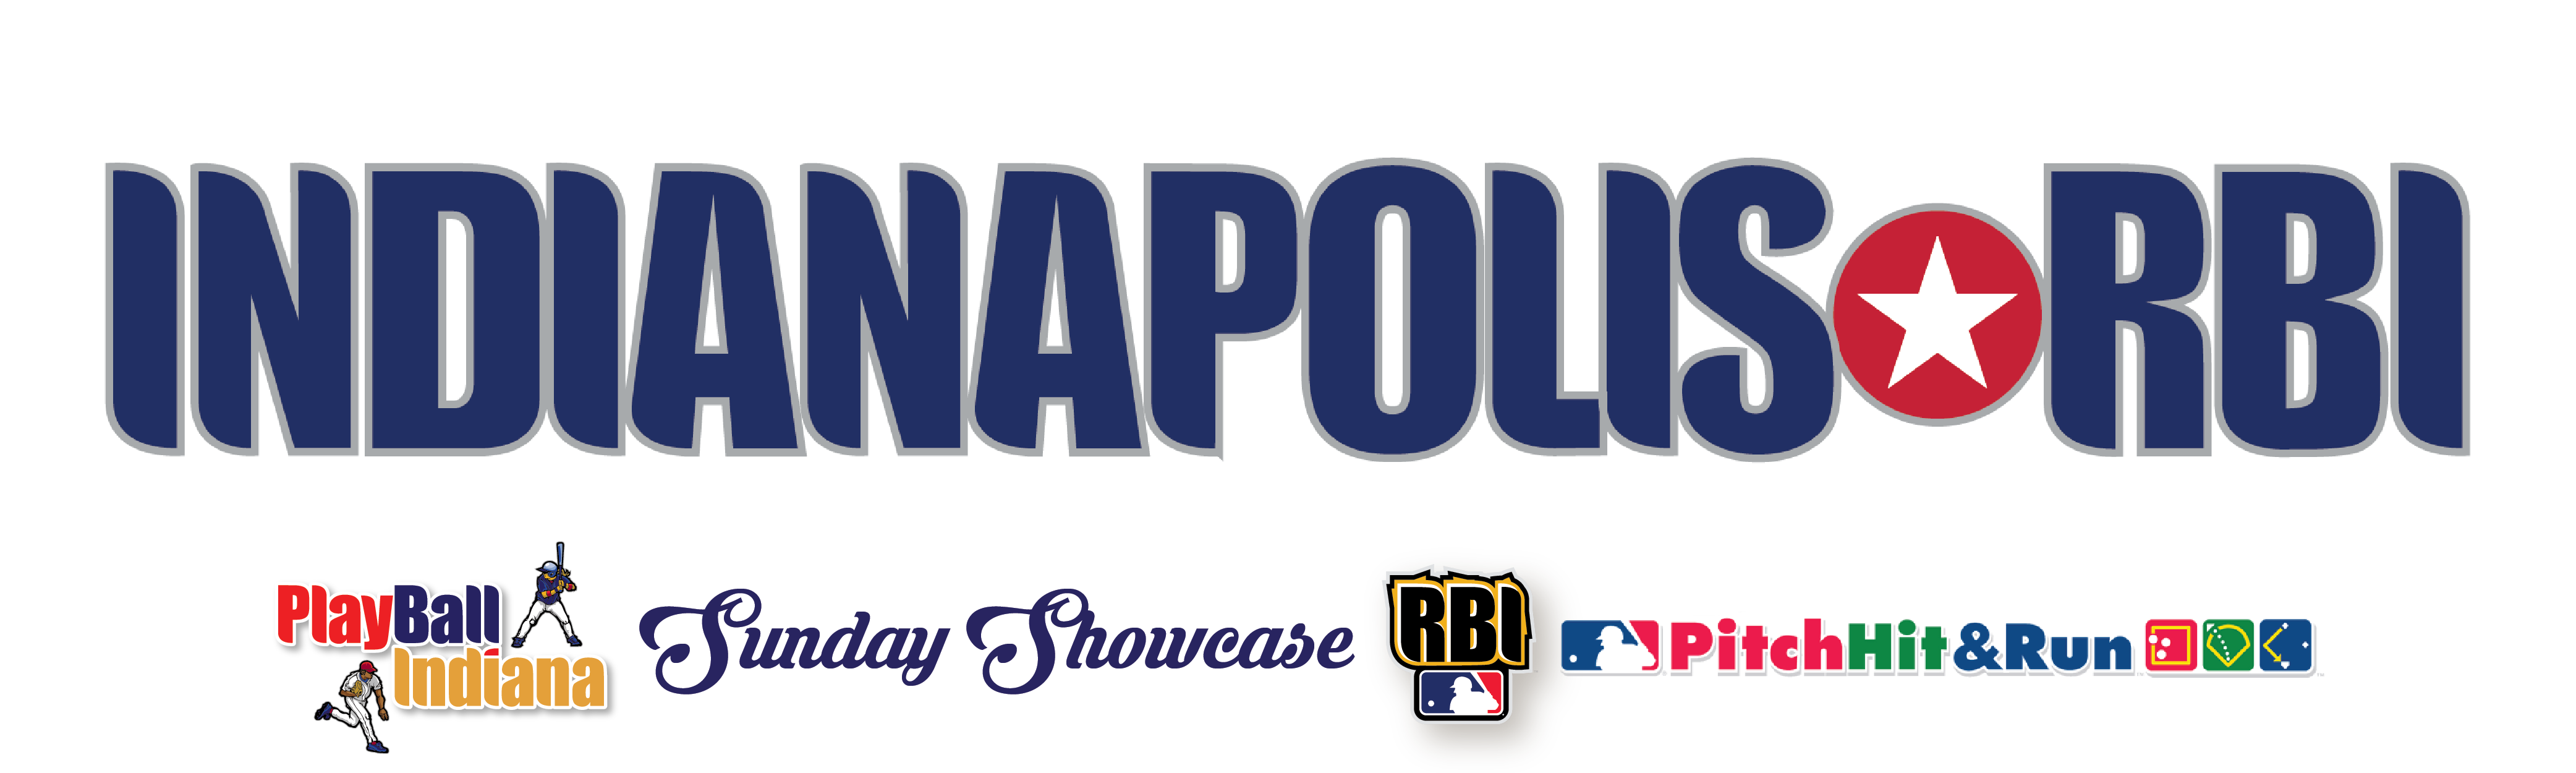 Indy rbi website header 01